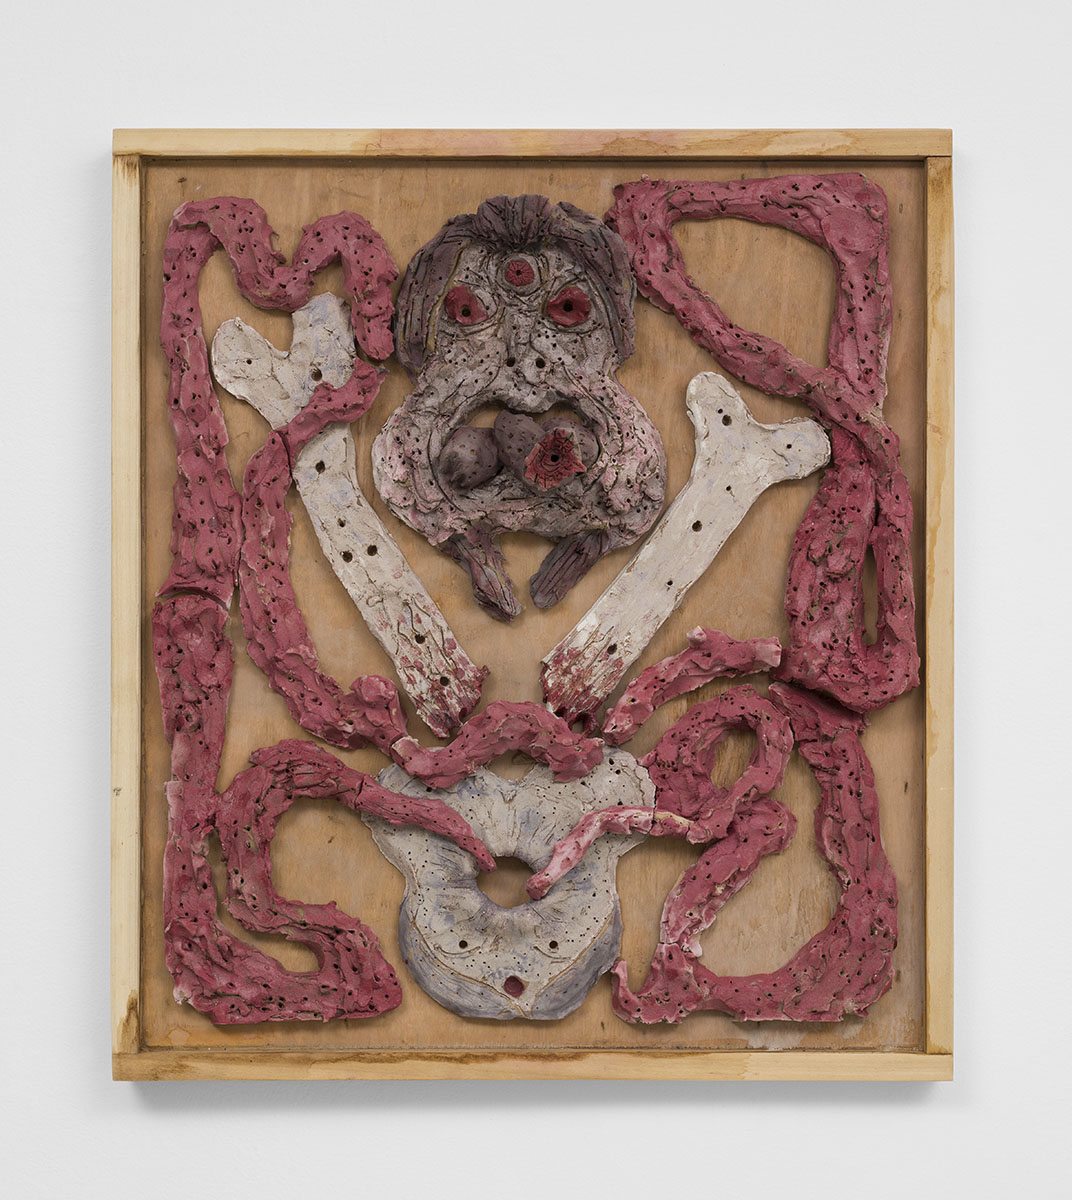 Richard Hawkins - Cannibal's Feast, 2015, glazed ceramic in artist's frame, 25 ¾ x 22 ¾ x 5 ½ inches